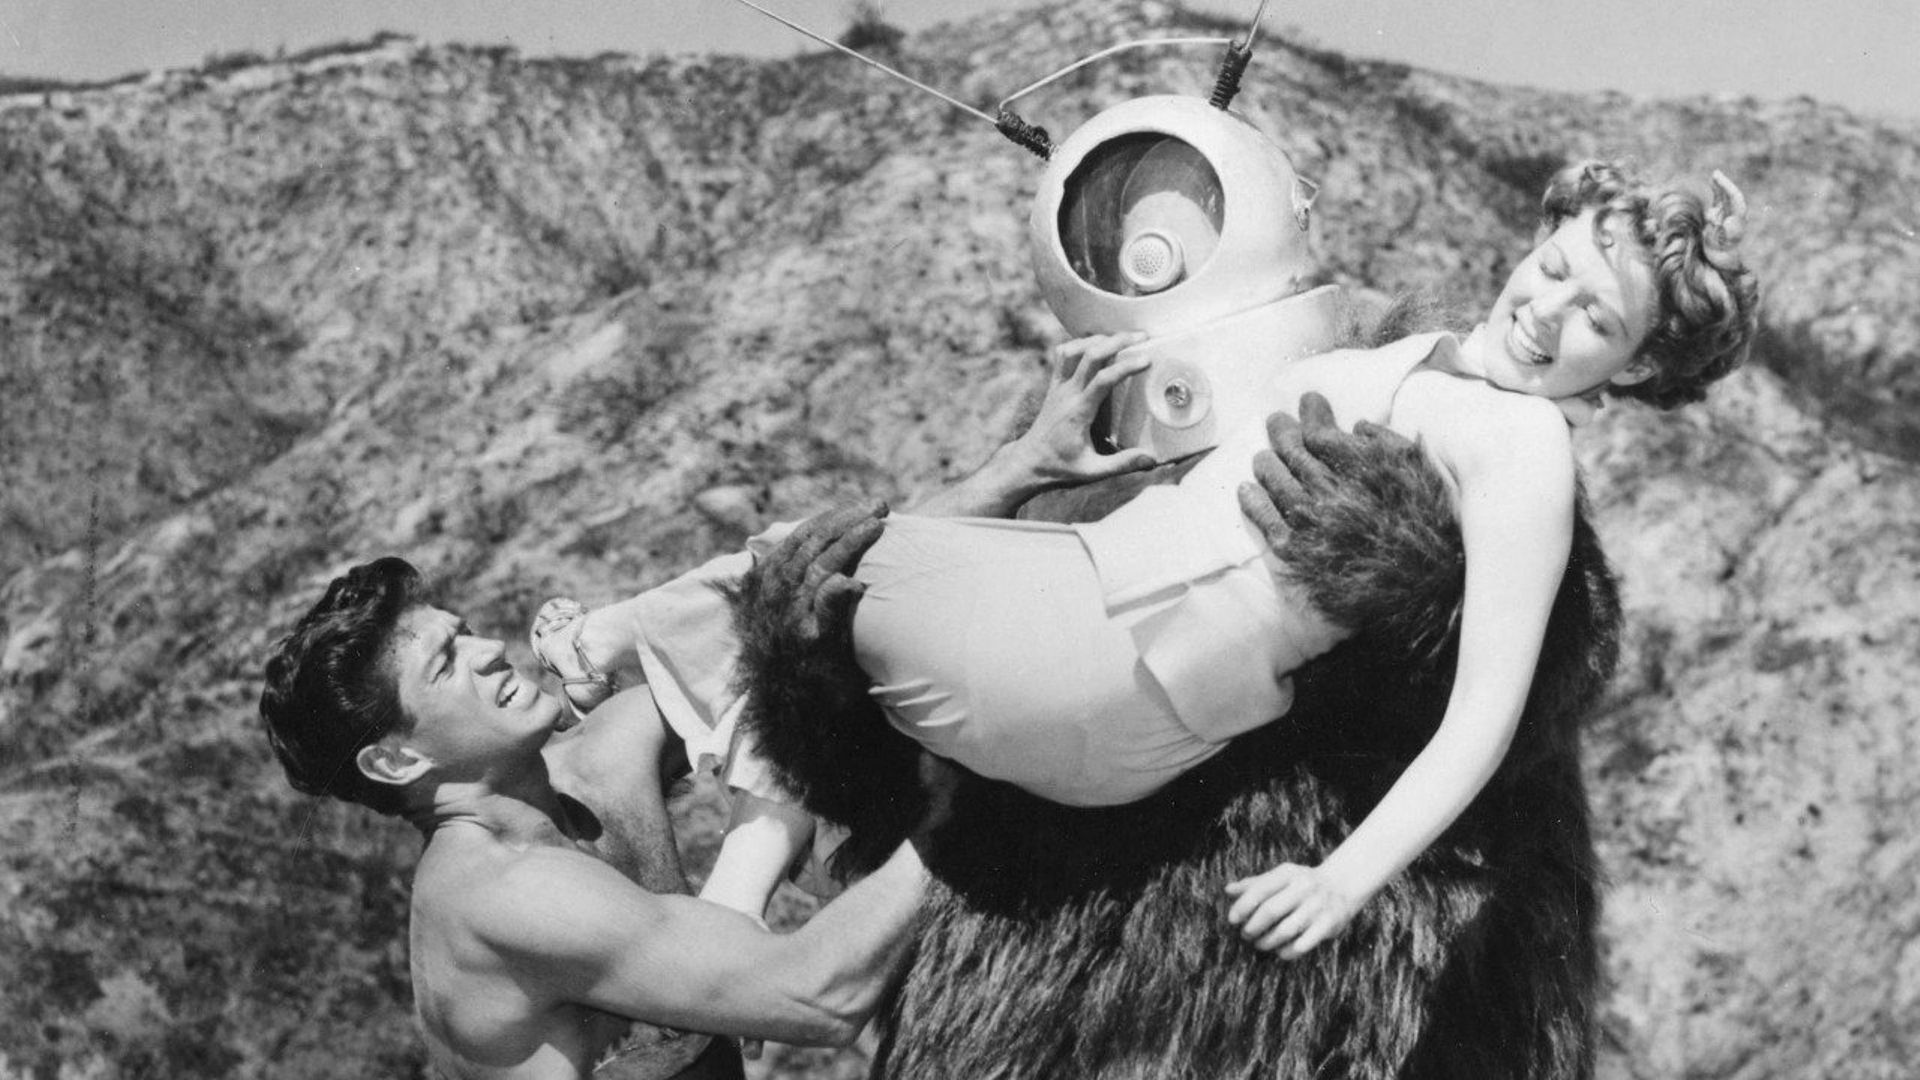 George Nader tries to stop Ro-Man (George Barrows) from abducting Claudia Barrett in Robot Monster (1953)